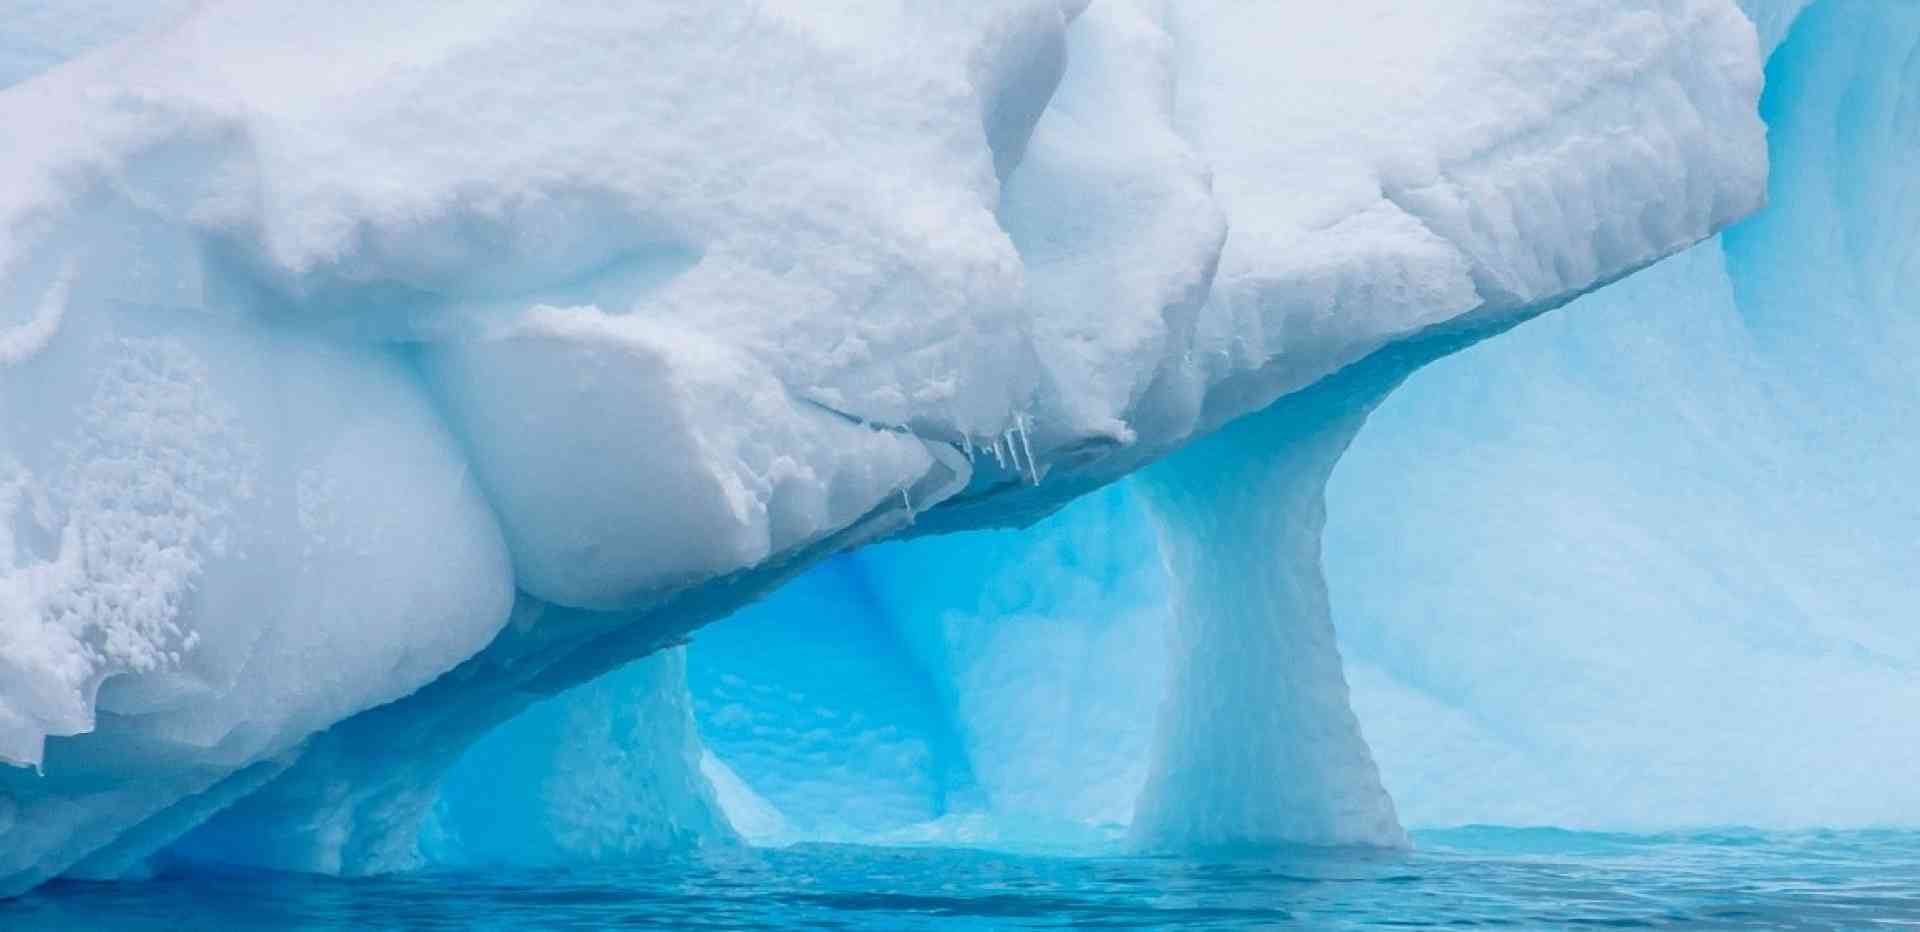 Iceberg formation, Antarctica by David Hein